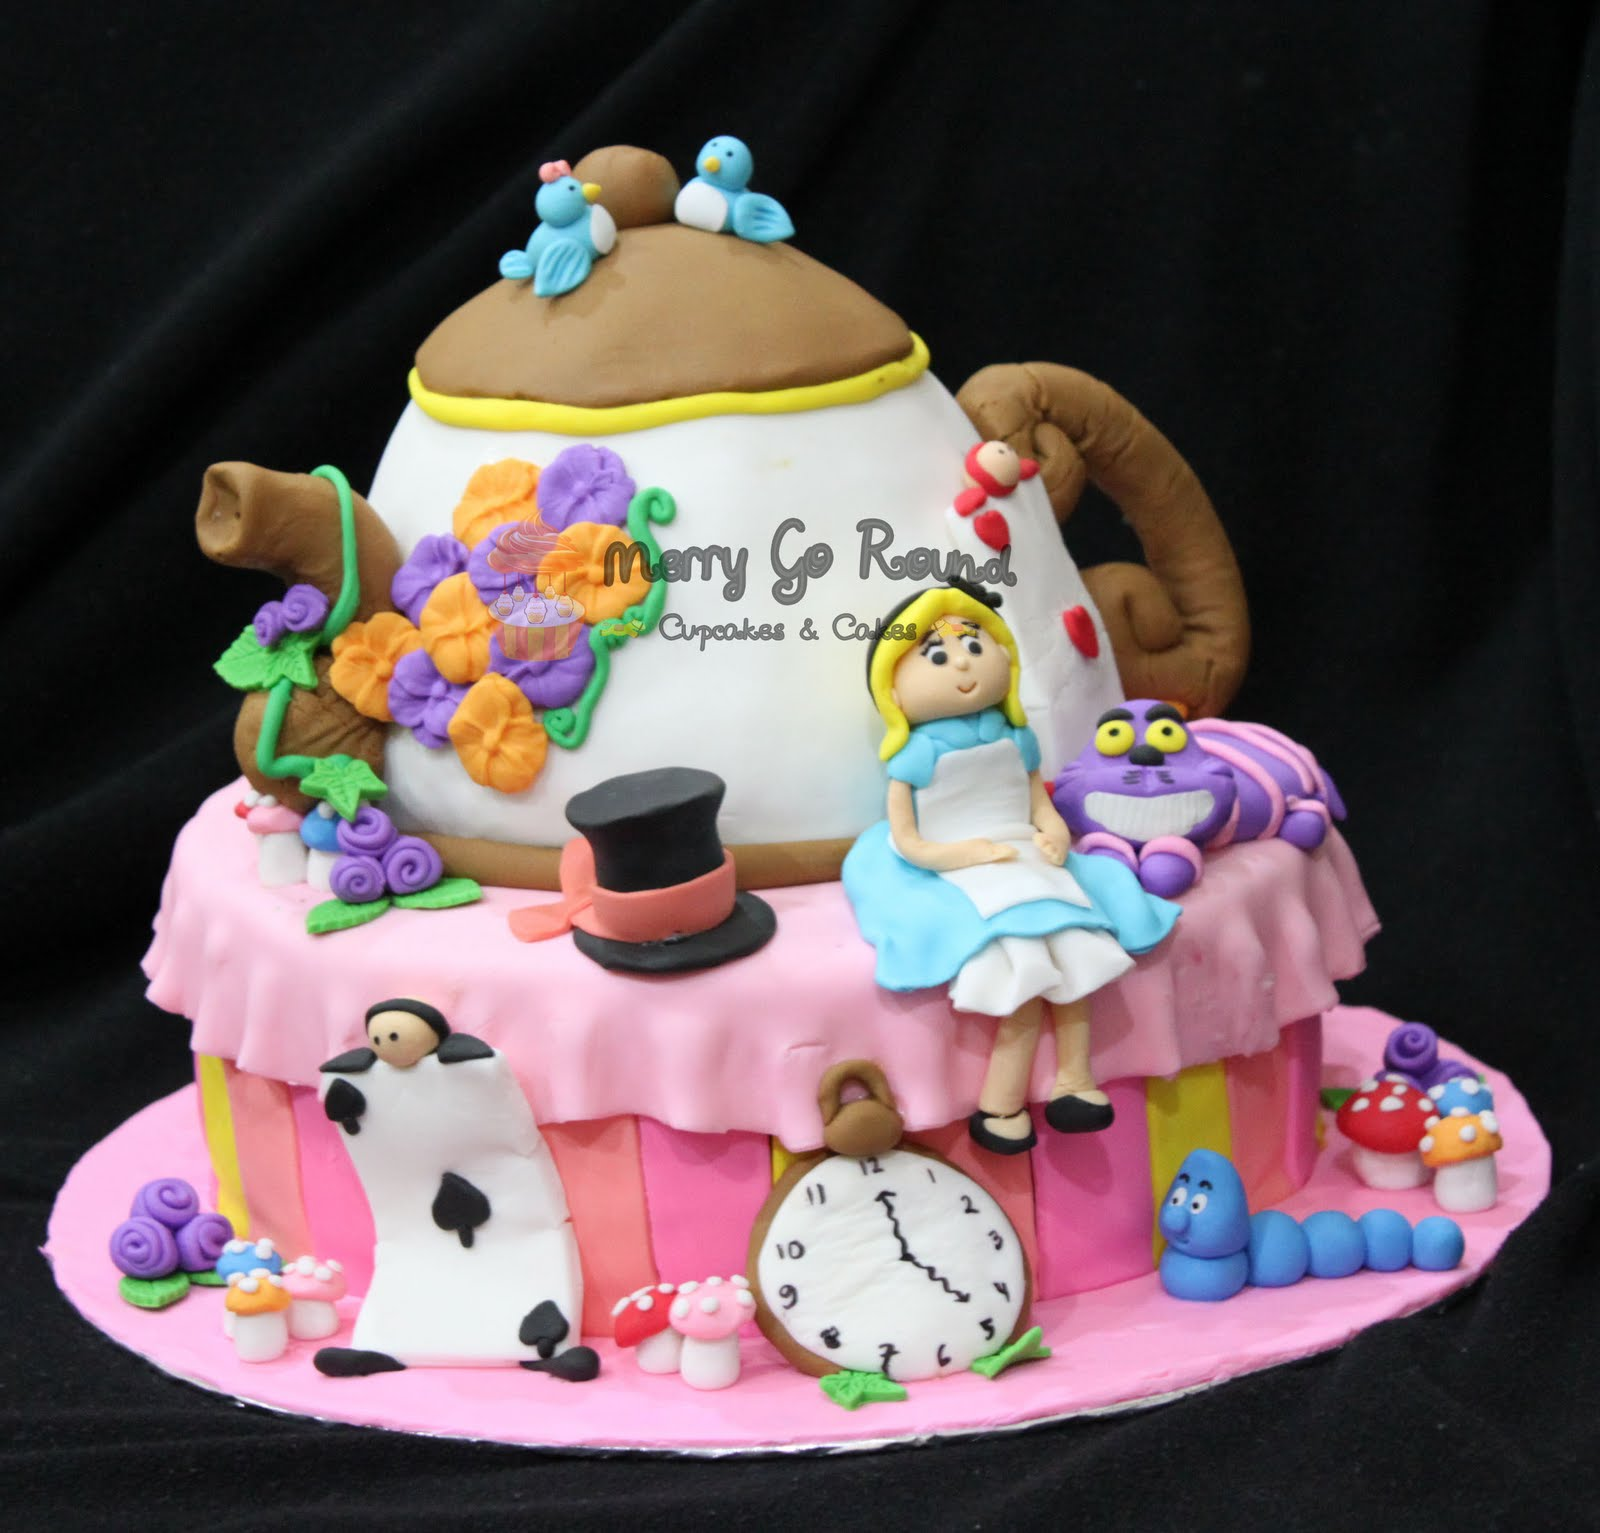 Merry Go Round Cupcakes Cakes Birthday Cake Alice in